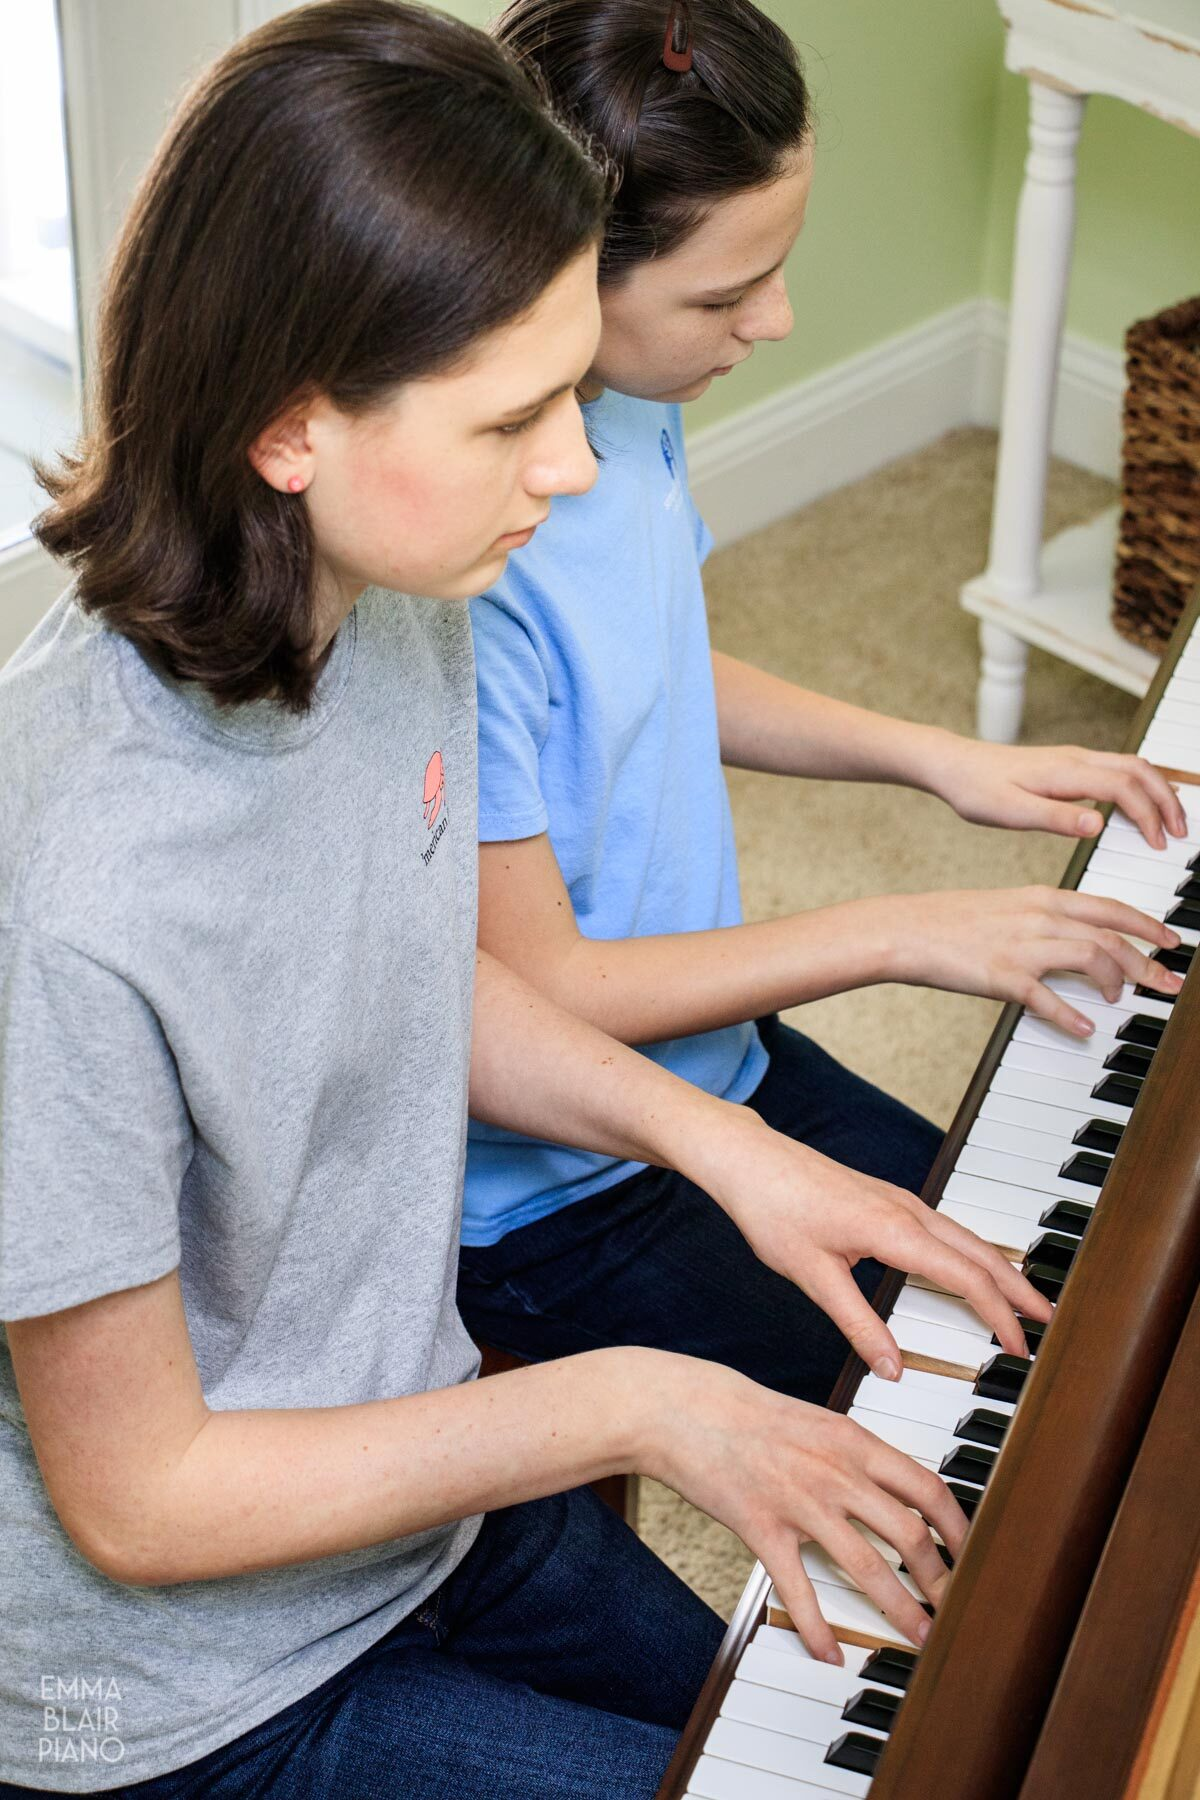 two girls playing a piano duet at a grand piano